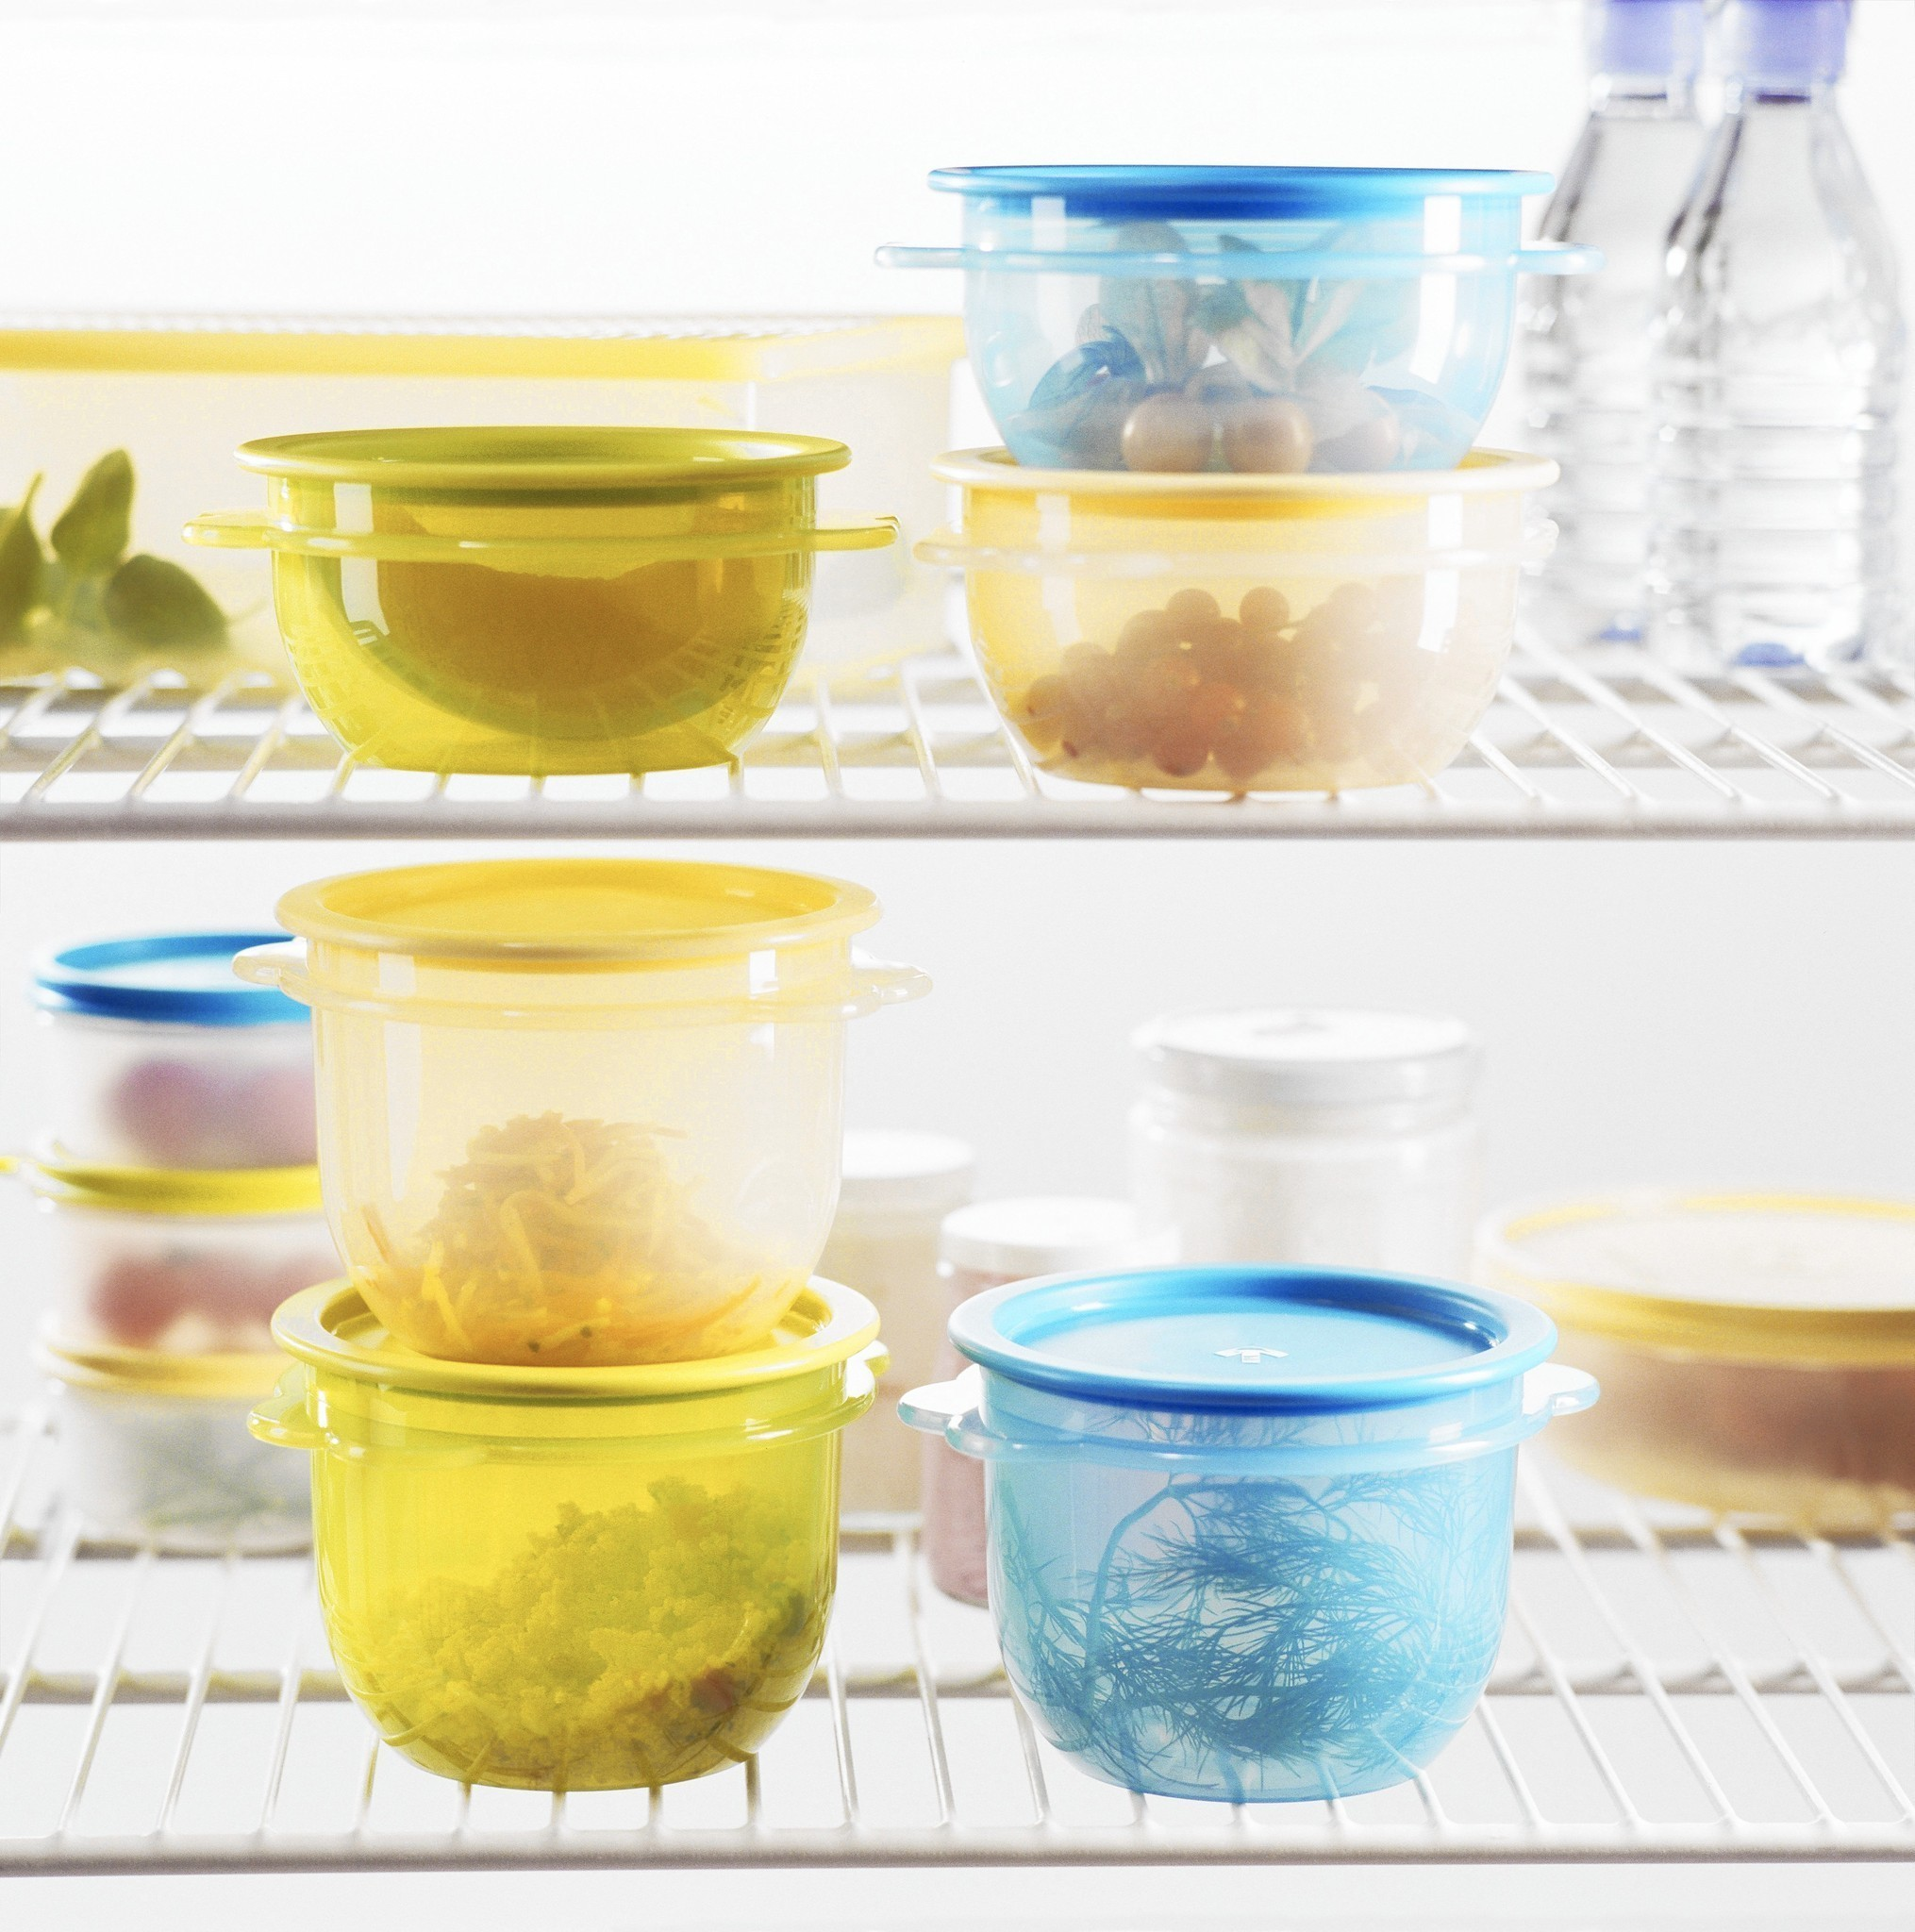 Storing leftovers Getting the right containers to keep food fresh